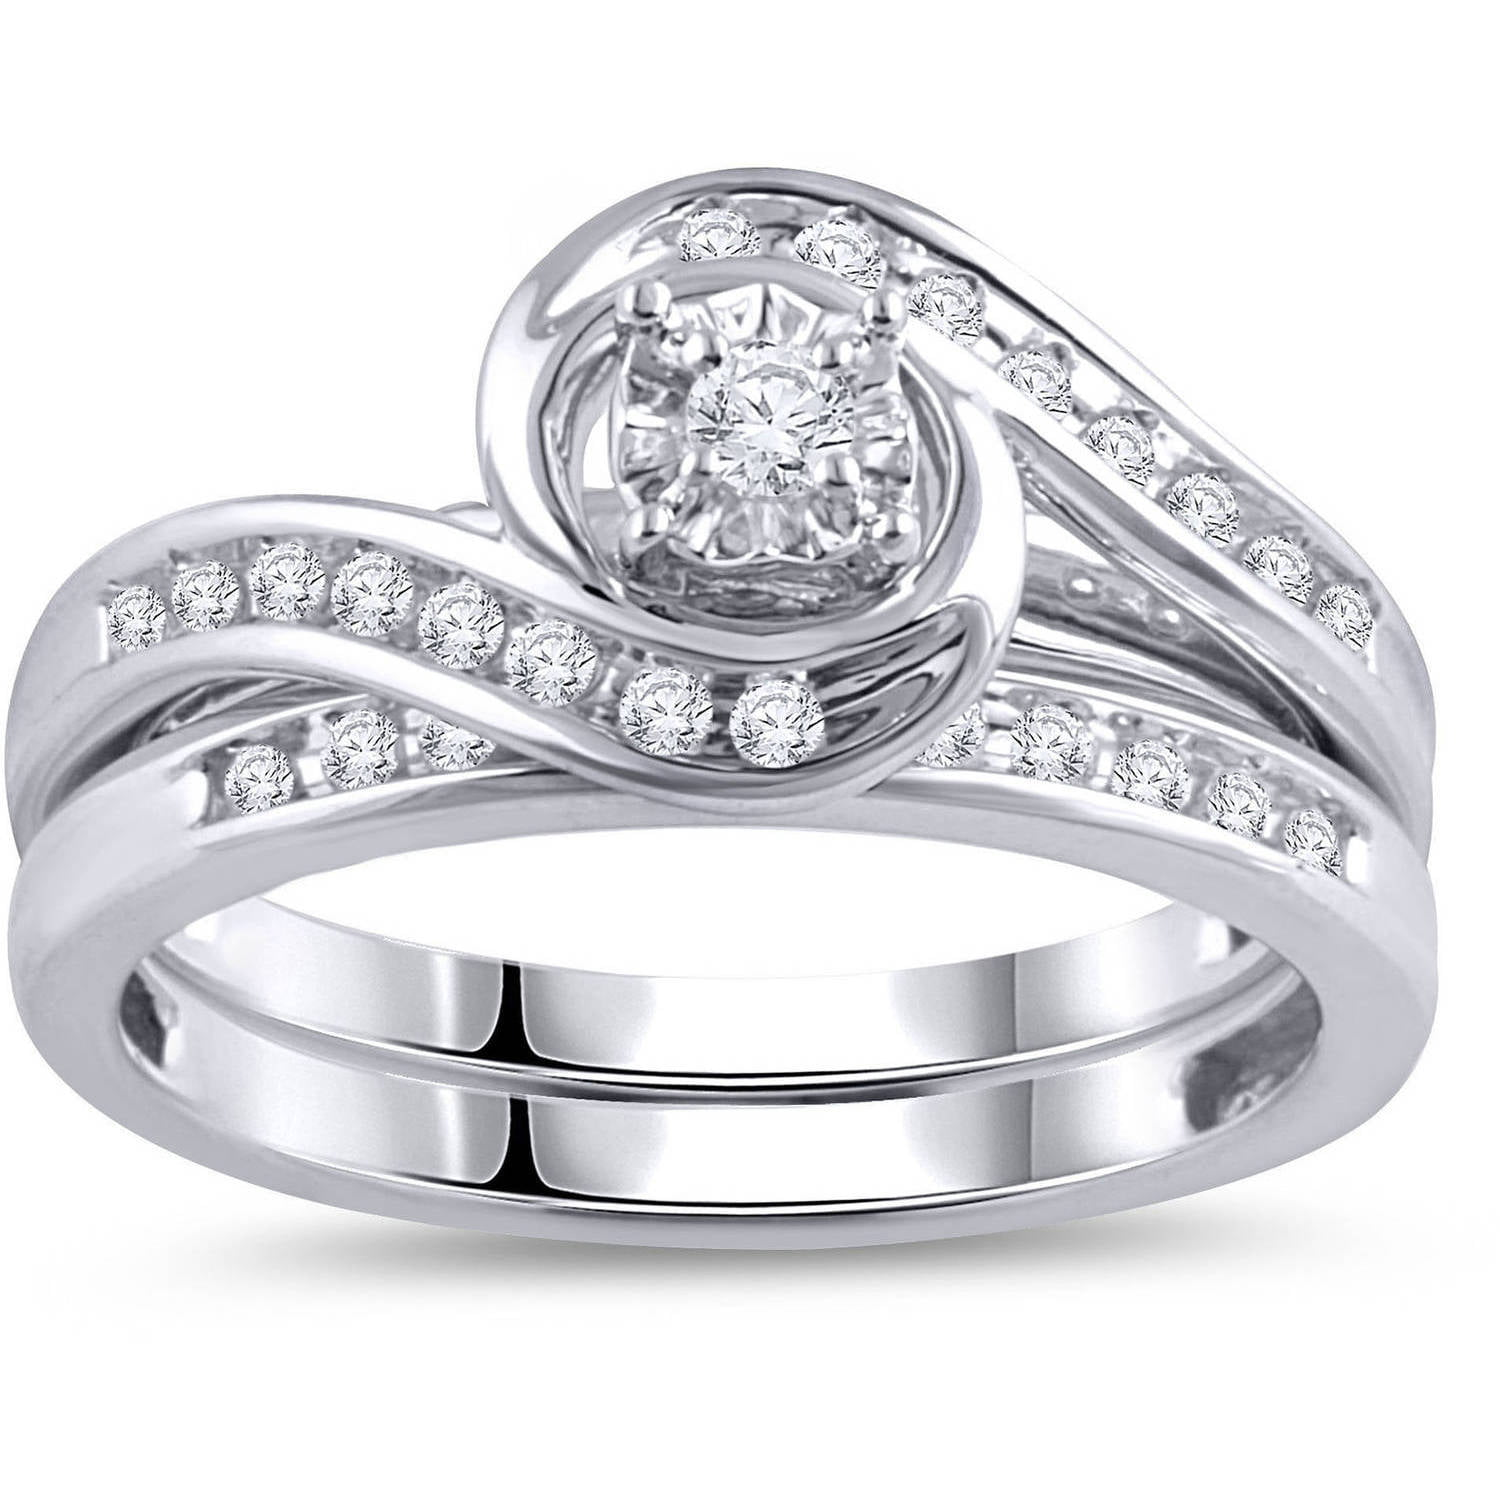 Online 1 3 Carat T W Diamond Bypass Ring Bridal Set In 10kt